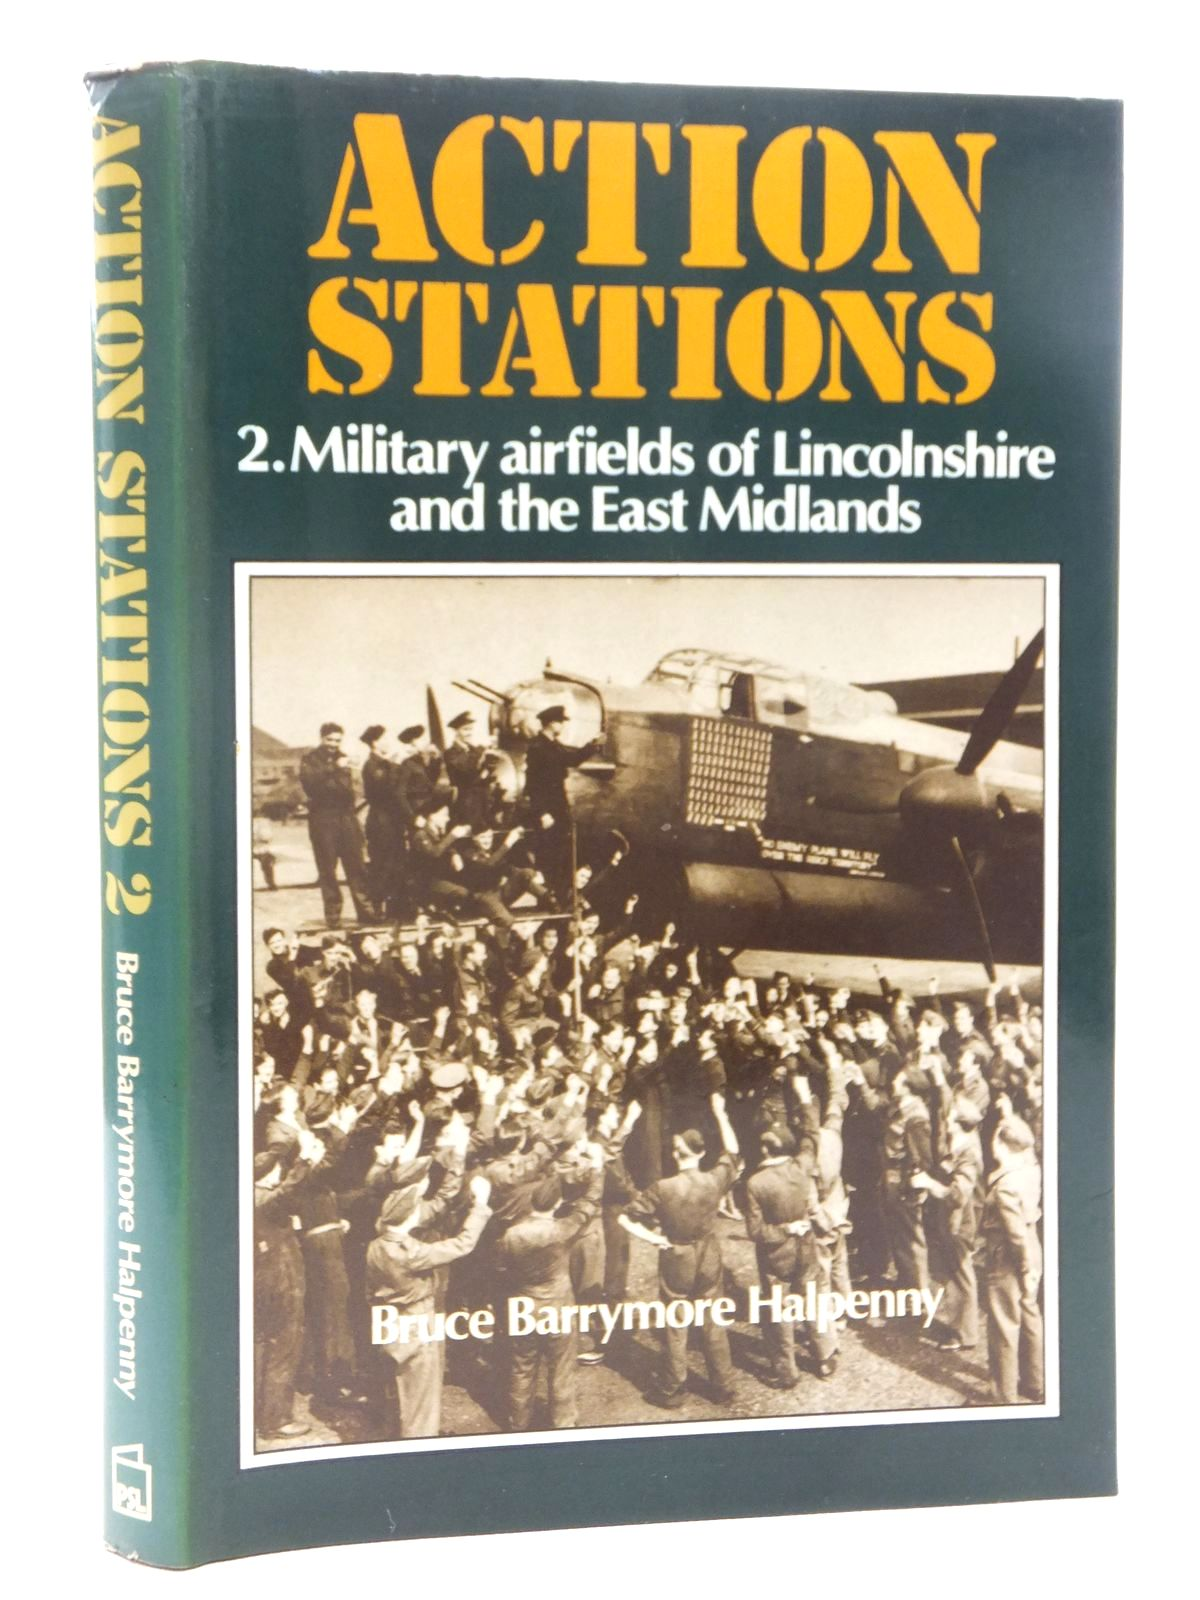 Photo of ACTION STATIONS 2 MILITARY AIRFIELDS OF LINCOLNSHIRE AND THE EAST MIDLANDS written by Halpenny, Bruce Barrymore published by Patrick Stephens (STOCK CODE: 1610098)  for sale by Stella & Rose's Books